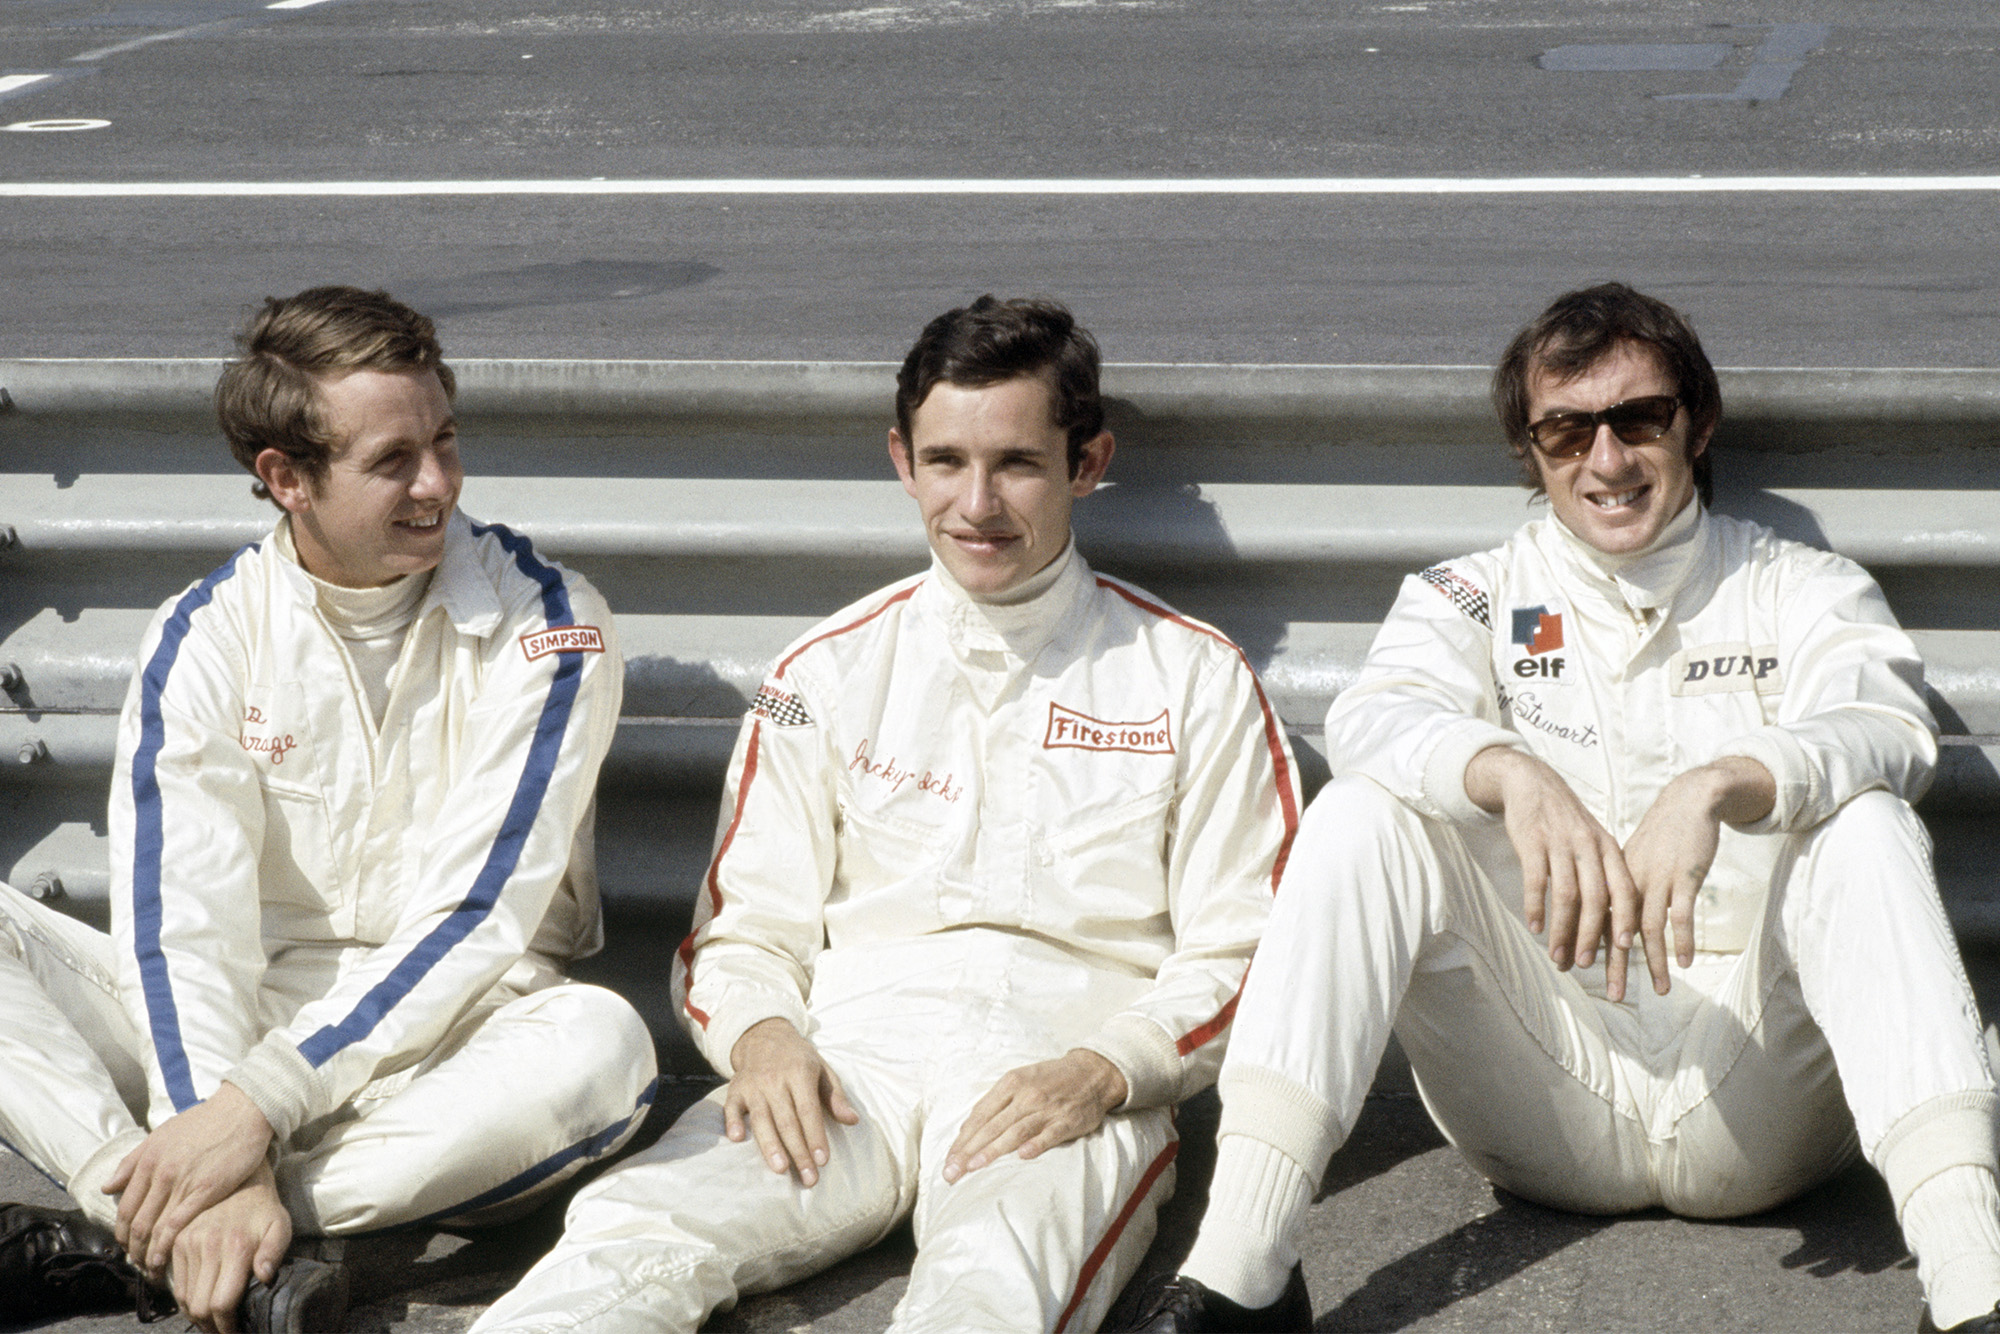 Piers Courage, Jacky Ickx and Jackie Stewart